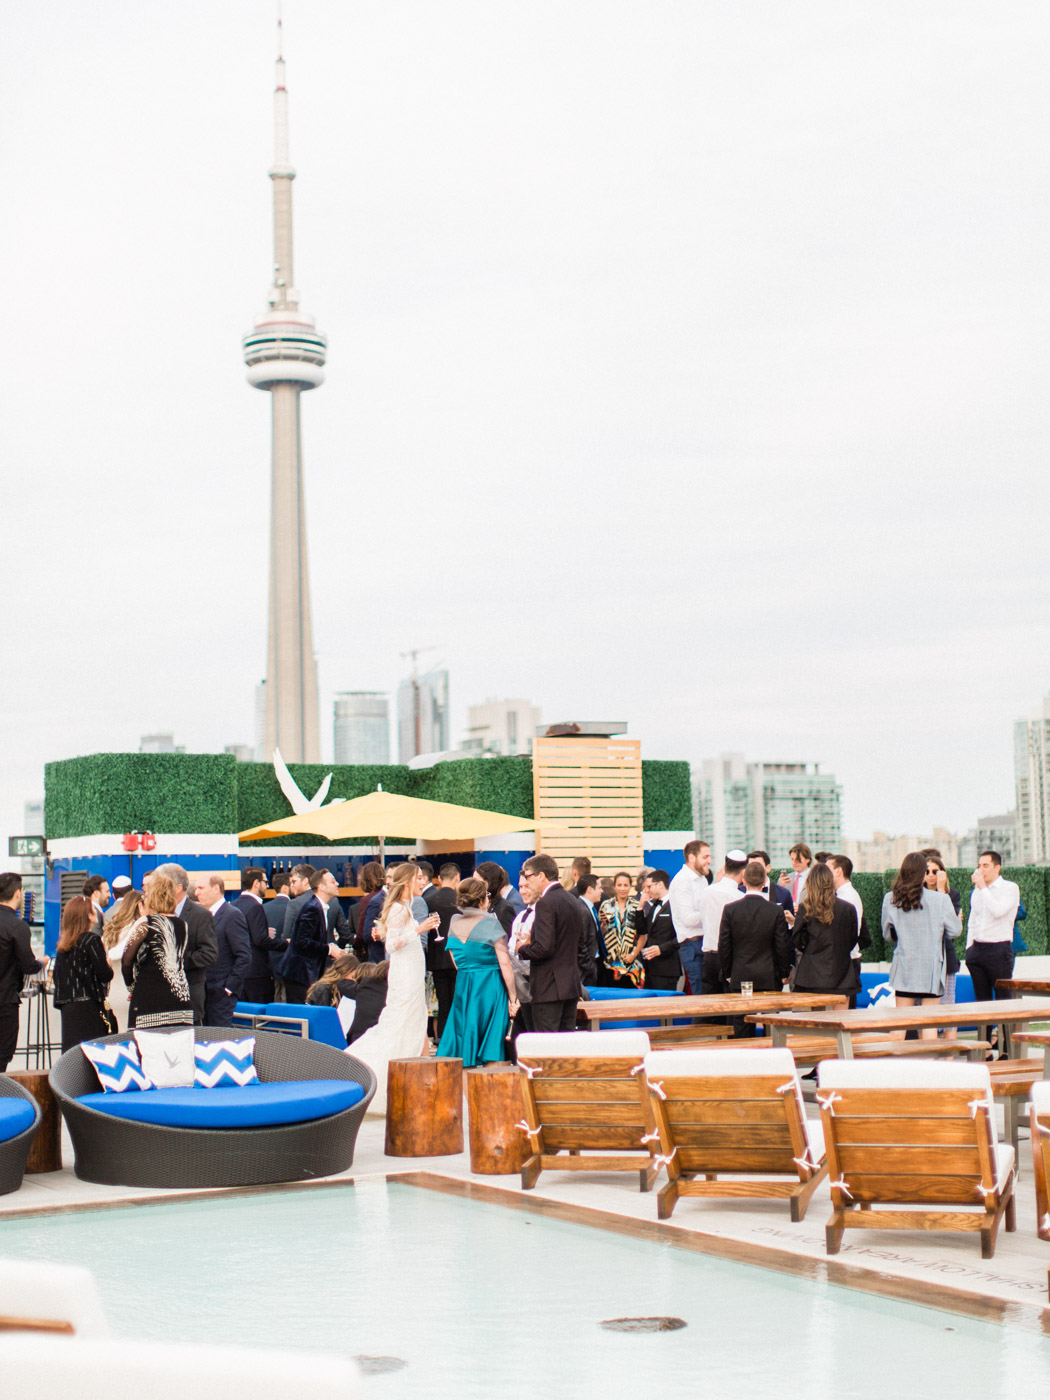 -	Candid wedding photography of guests enjoying the reception at an outdoor summer wedding in Toronto.  Captured by Toronto wedding photographer Corynn Fowler Photography.